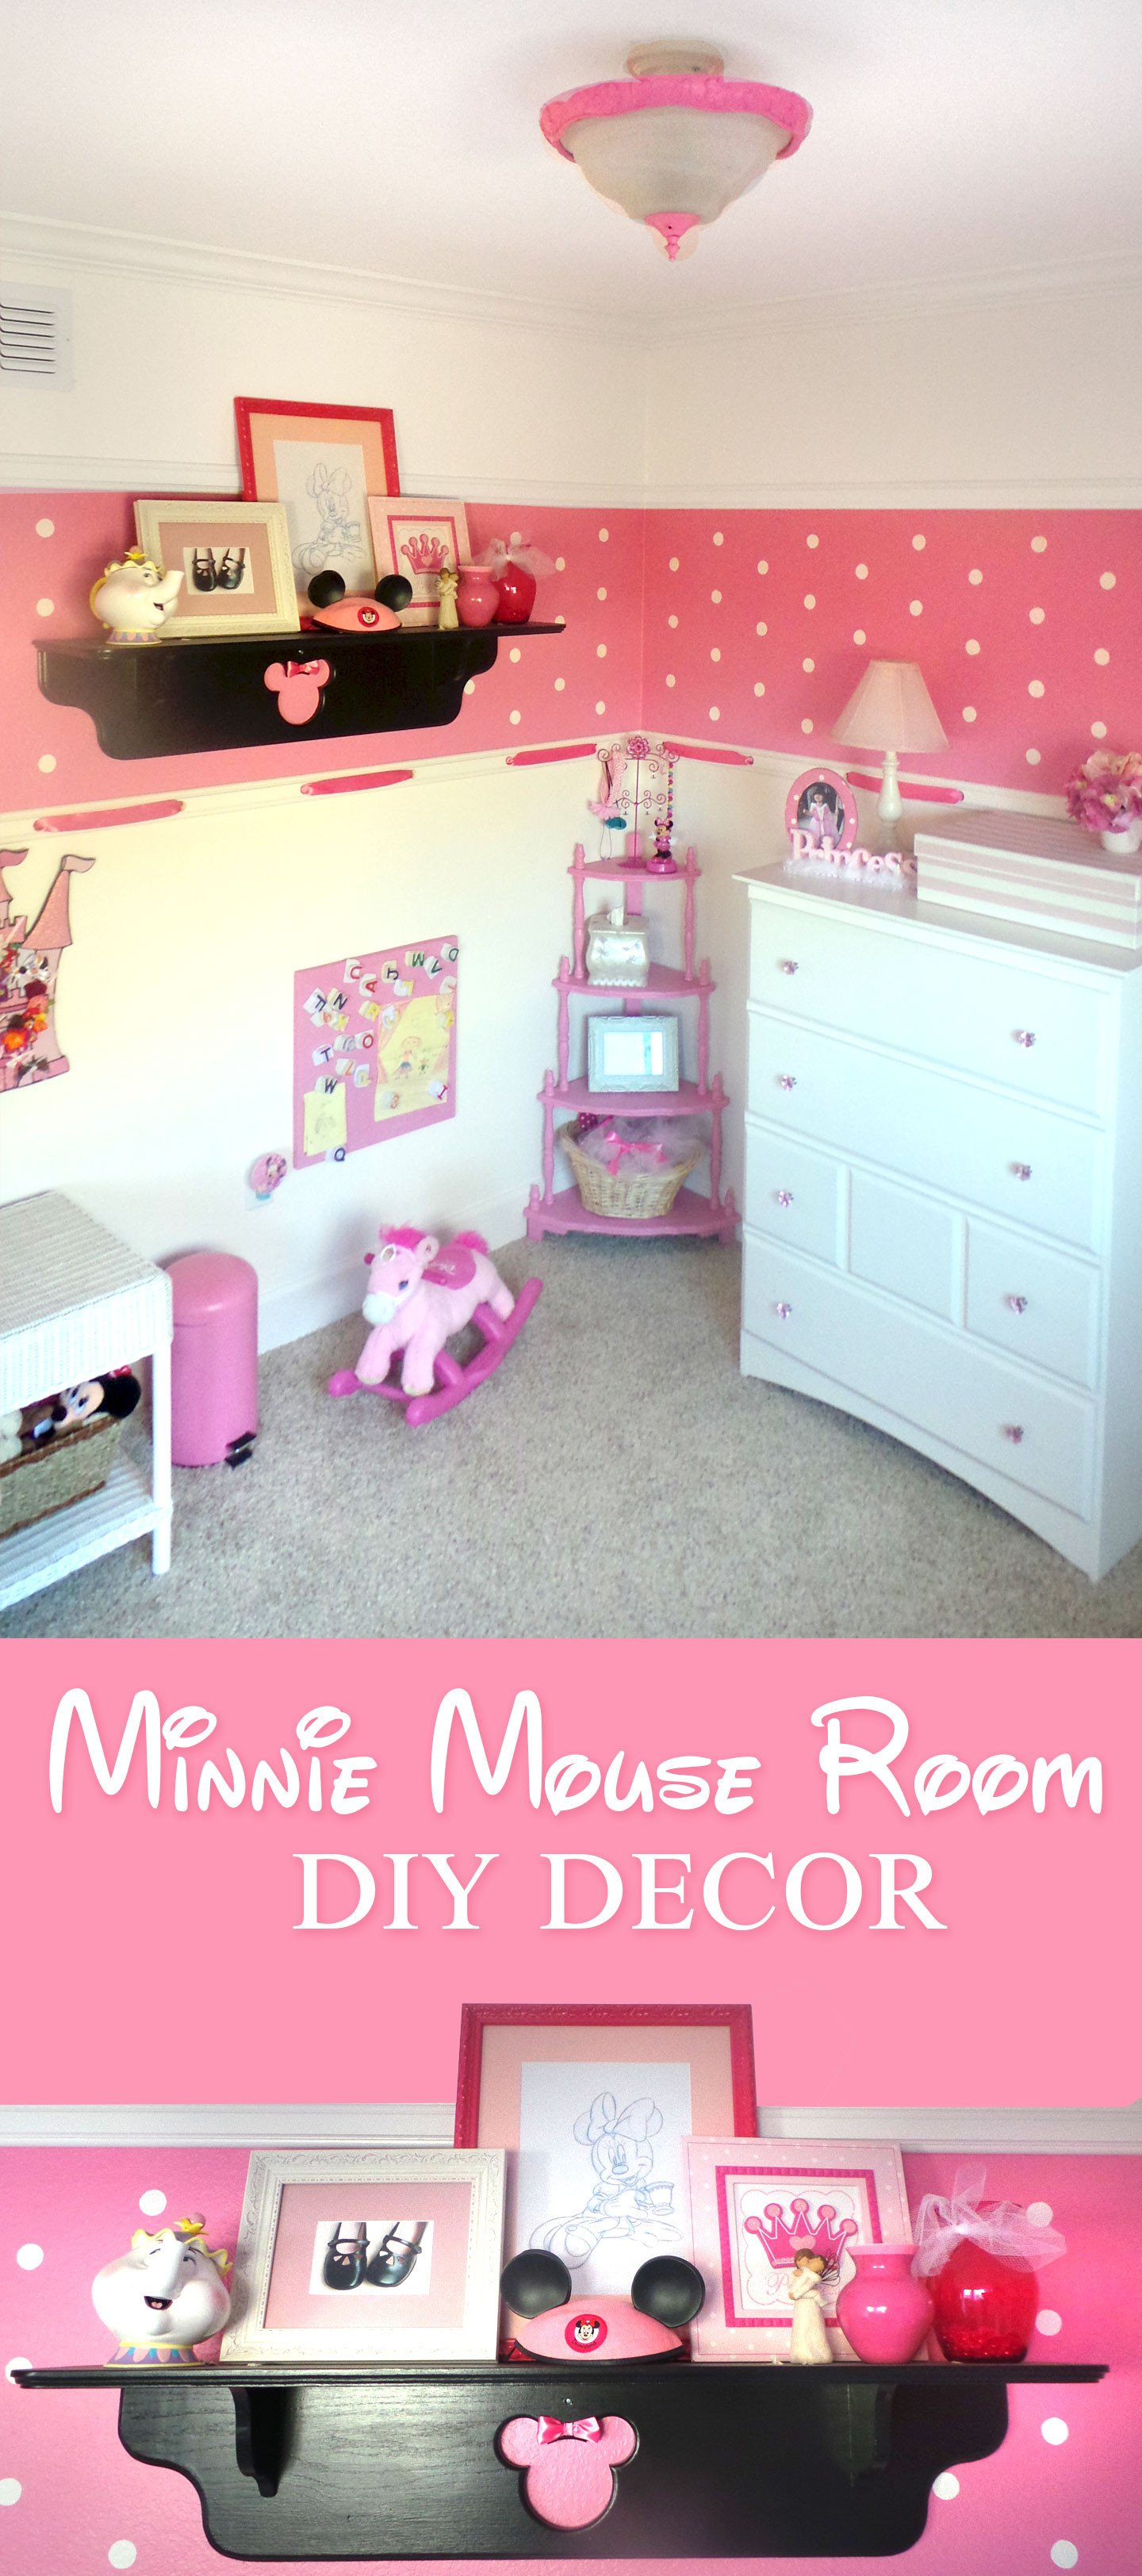 Diy Little Girl Room Decor Unique Minnie Mouse Room Diy Decor Highlights Along the Way